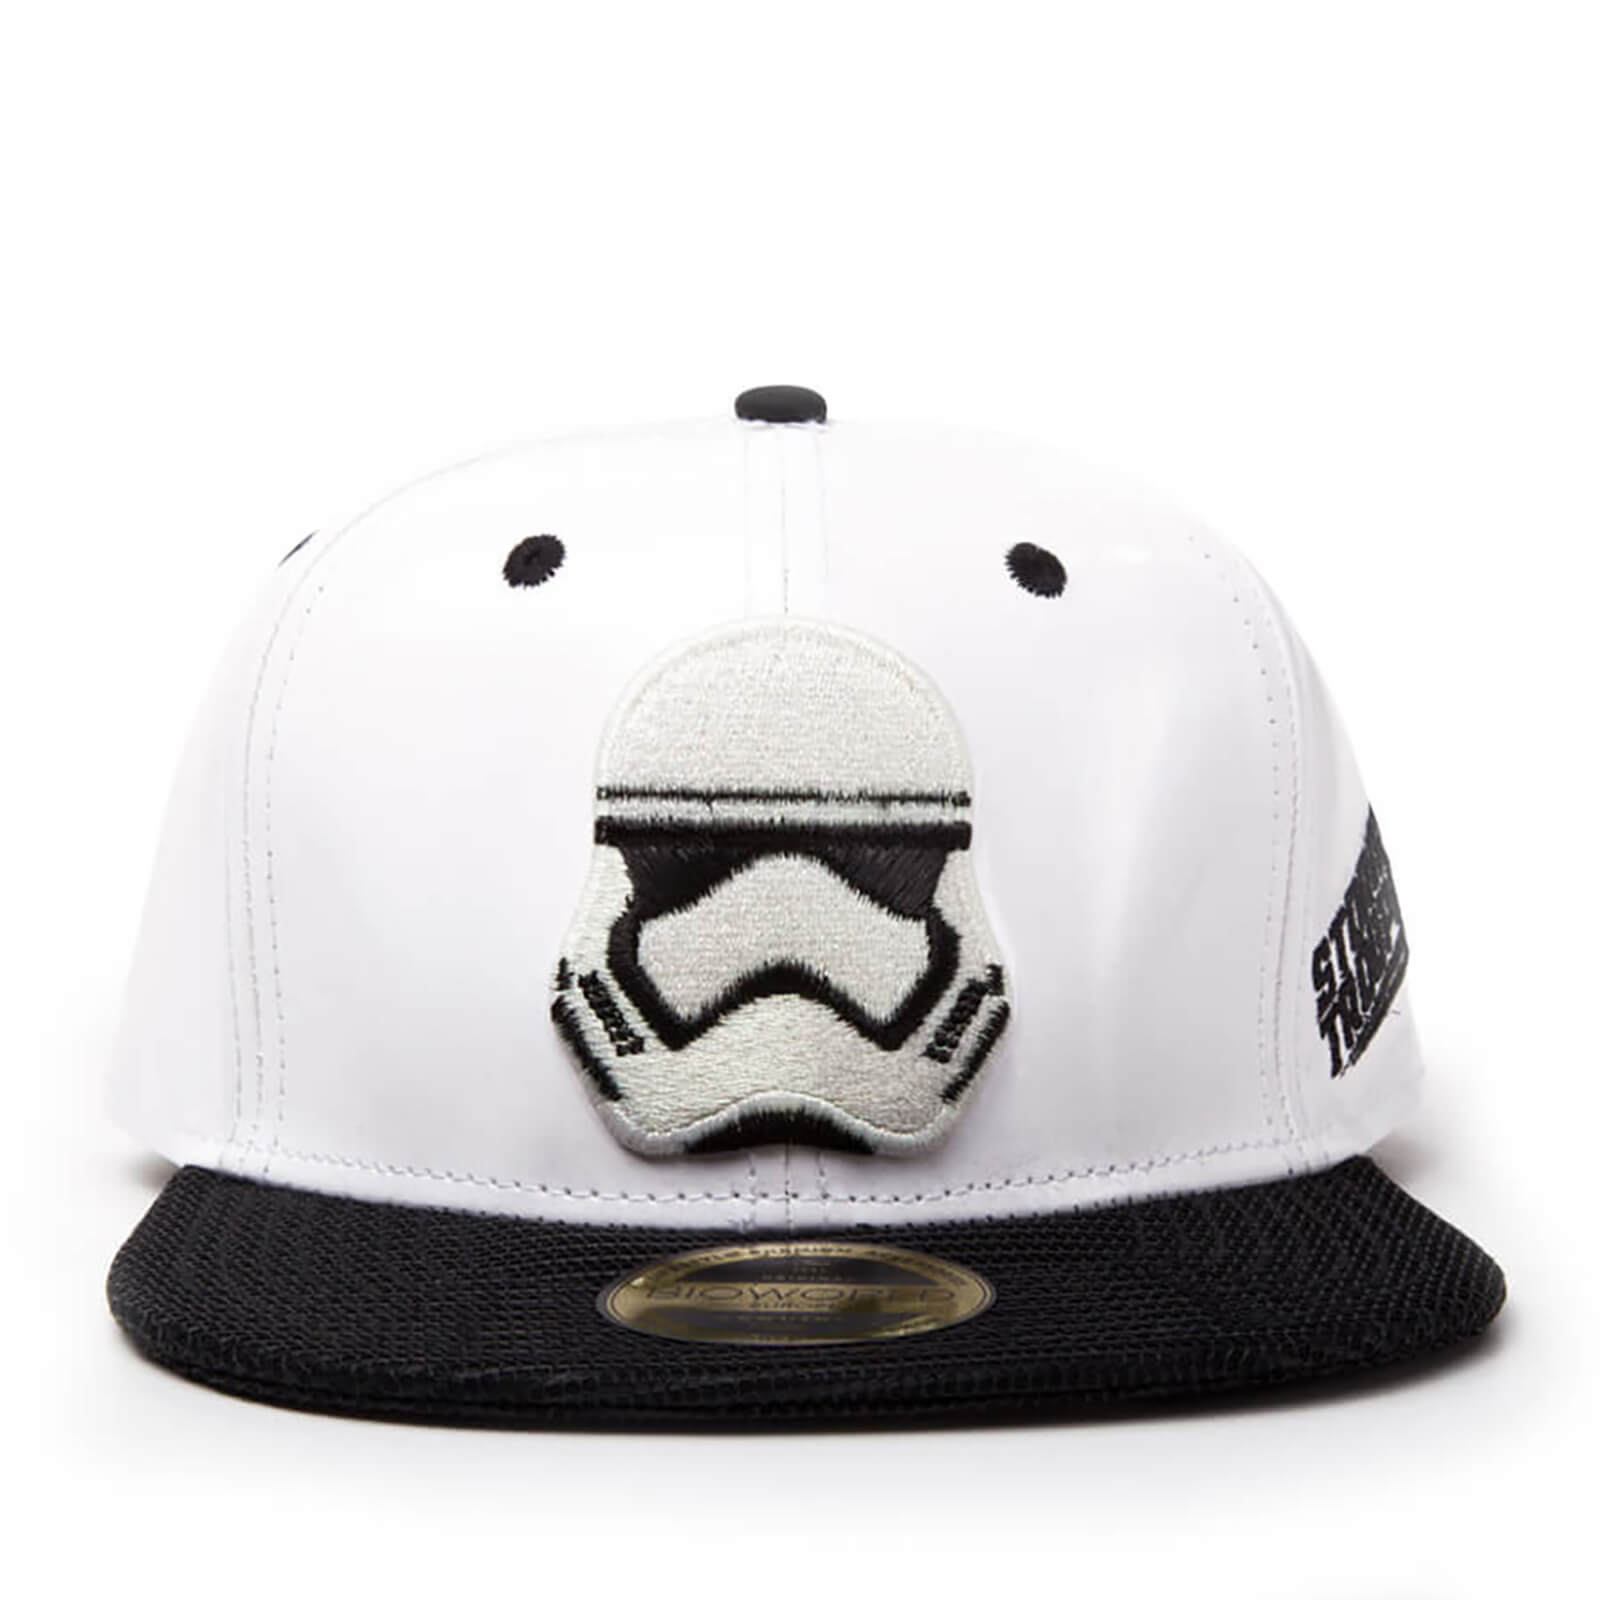 Star Wars Snapback Cap with Stormtrooper Embroidery and Black Bill - White